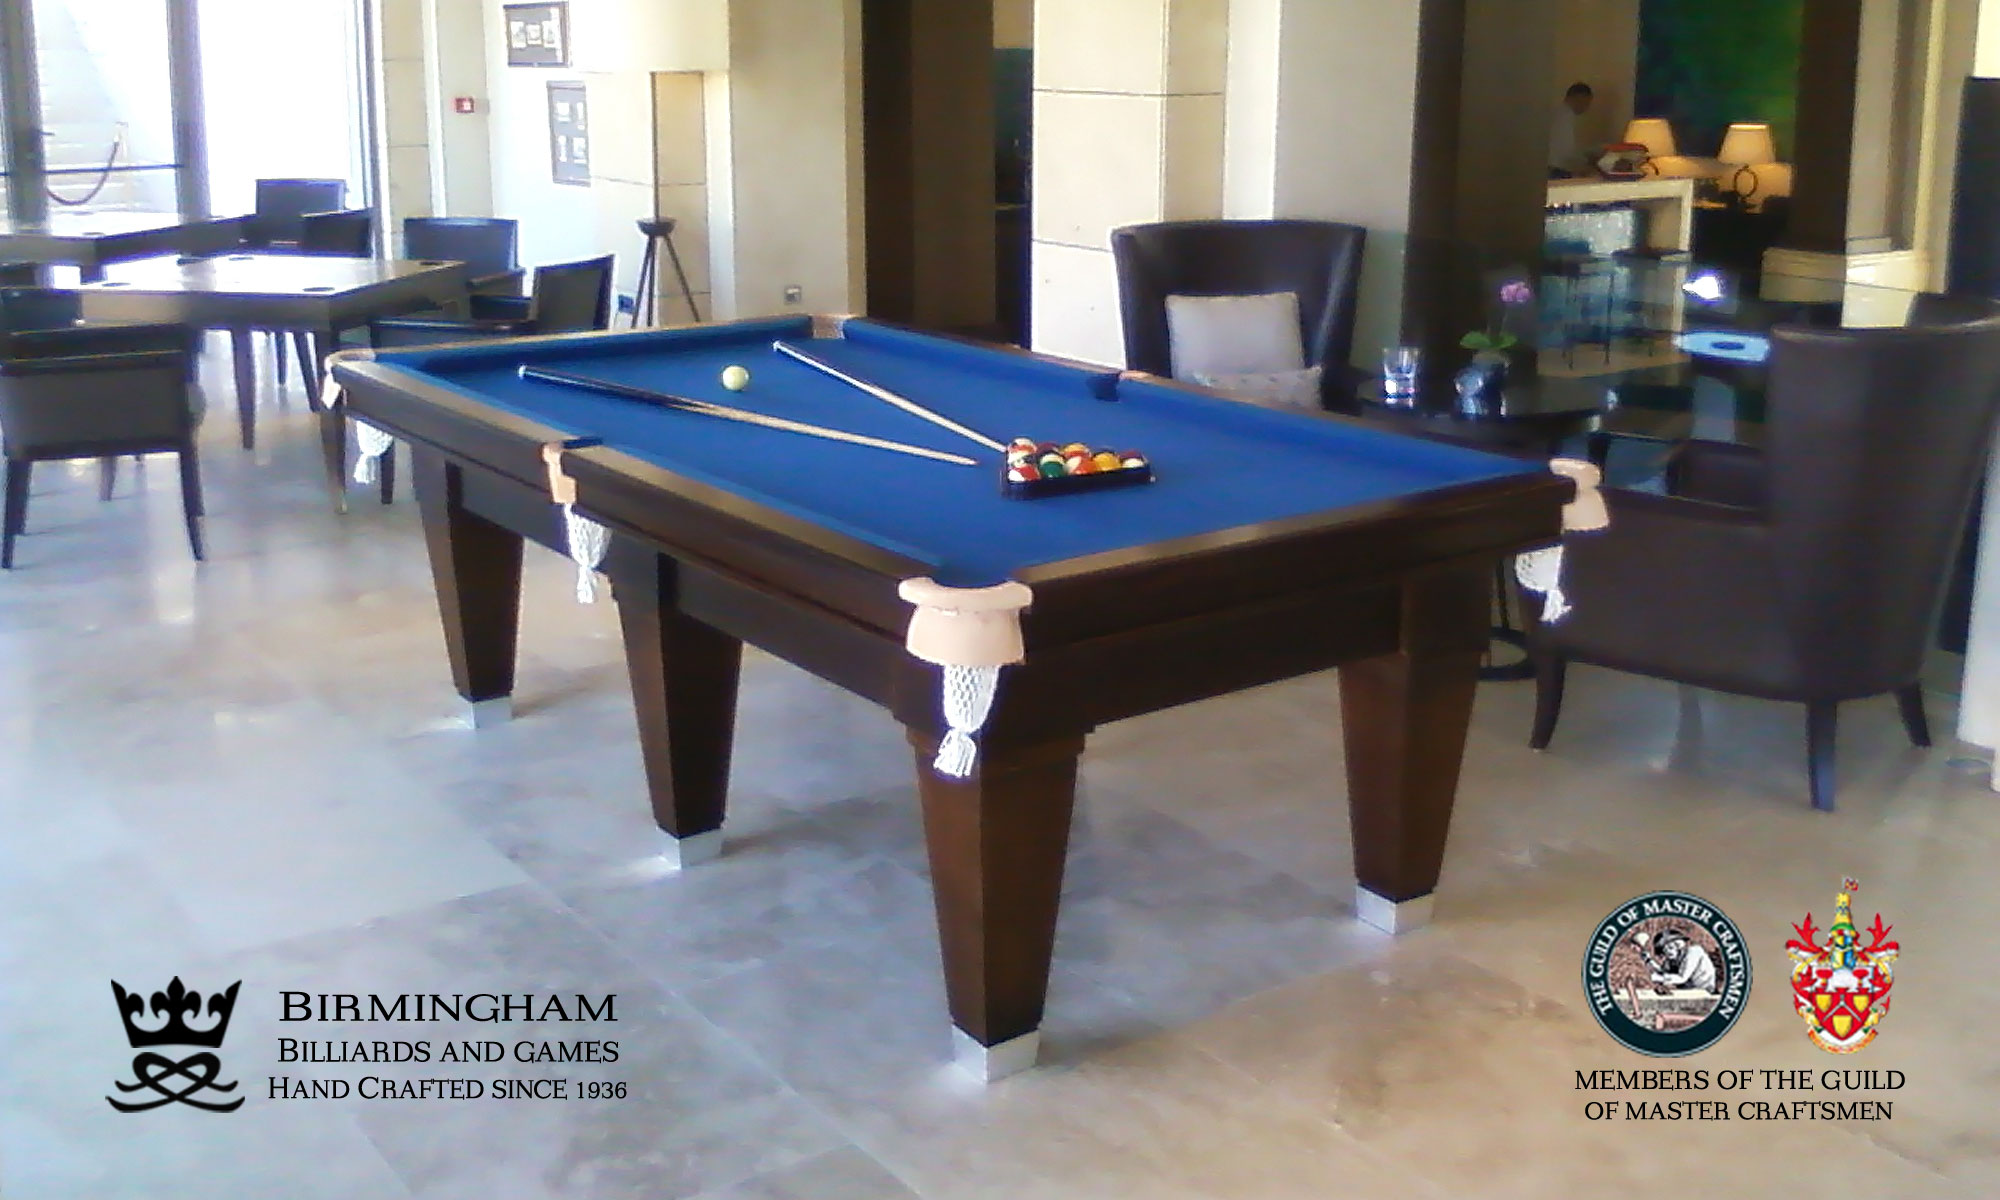 Birmingham Billiards Snooker Tables Pool Tables Snooker Cues - How much space do you need for a pool table